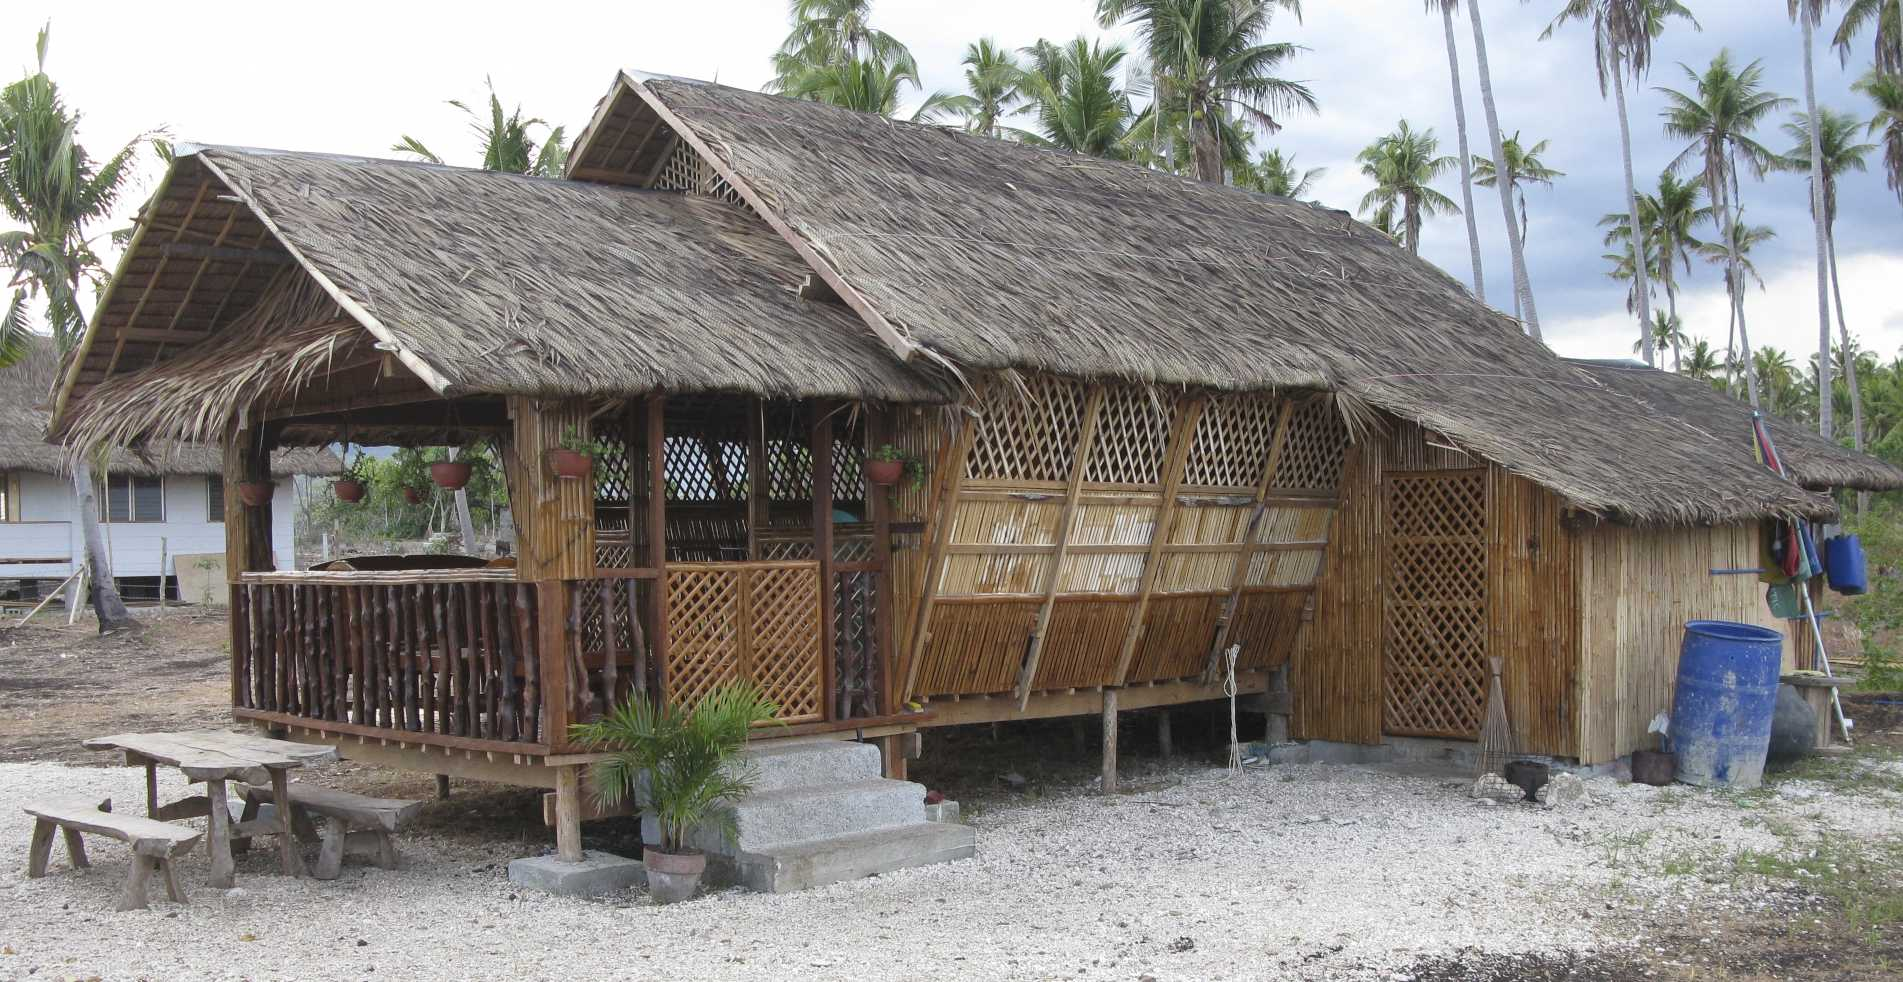 Made of woven nipa or coconut fronds or cogon grass walls made of thin strips of bamboo or woven into a mat called sawali or amakan both those things